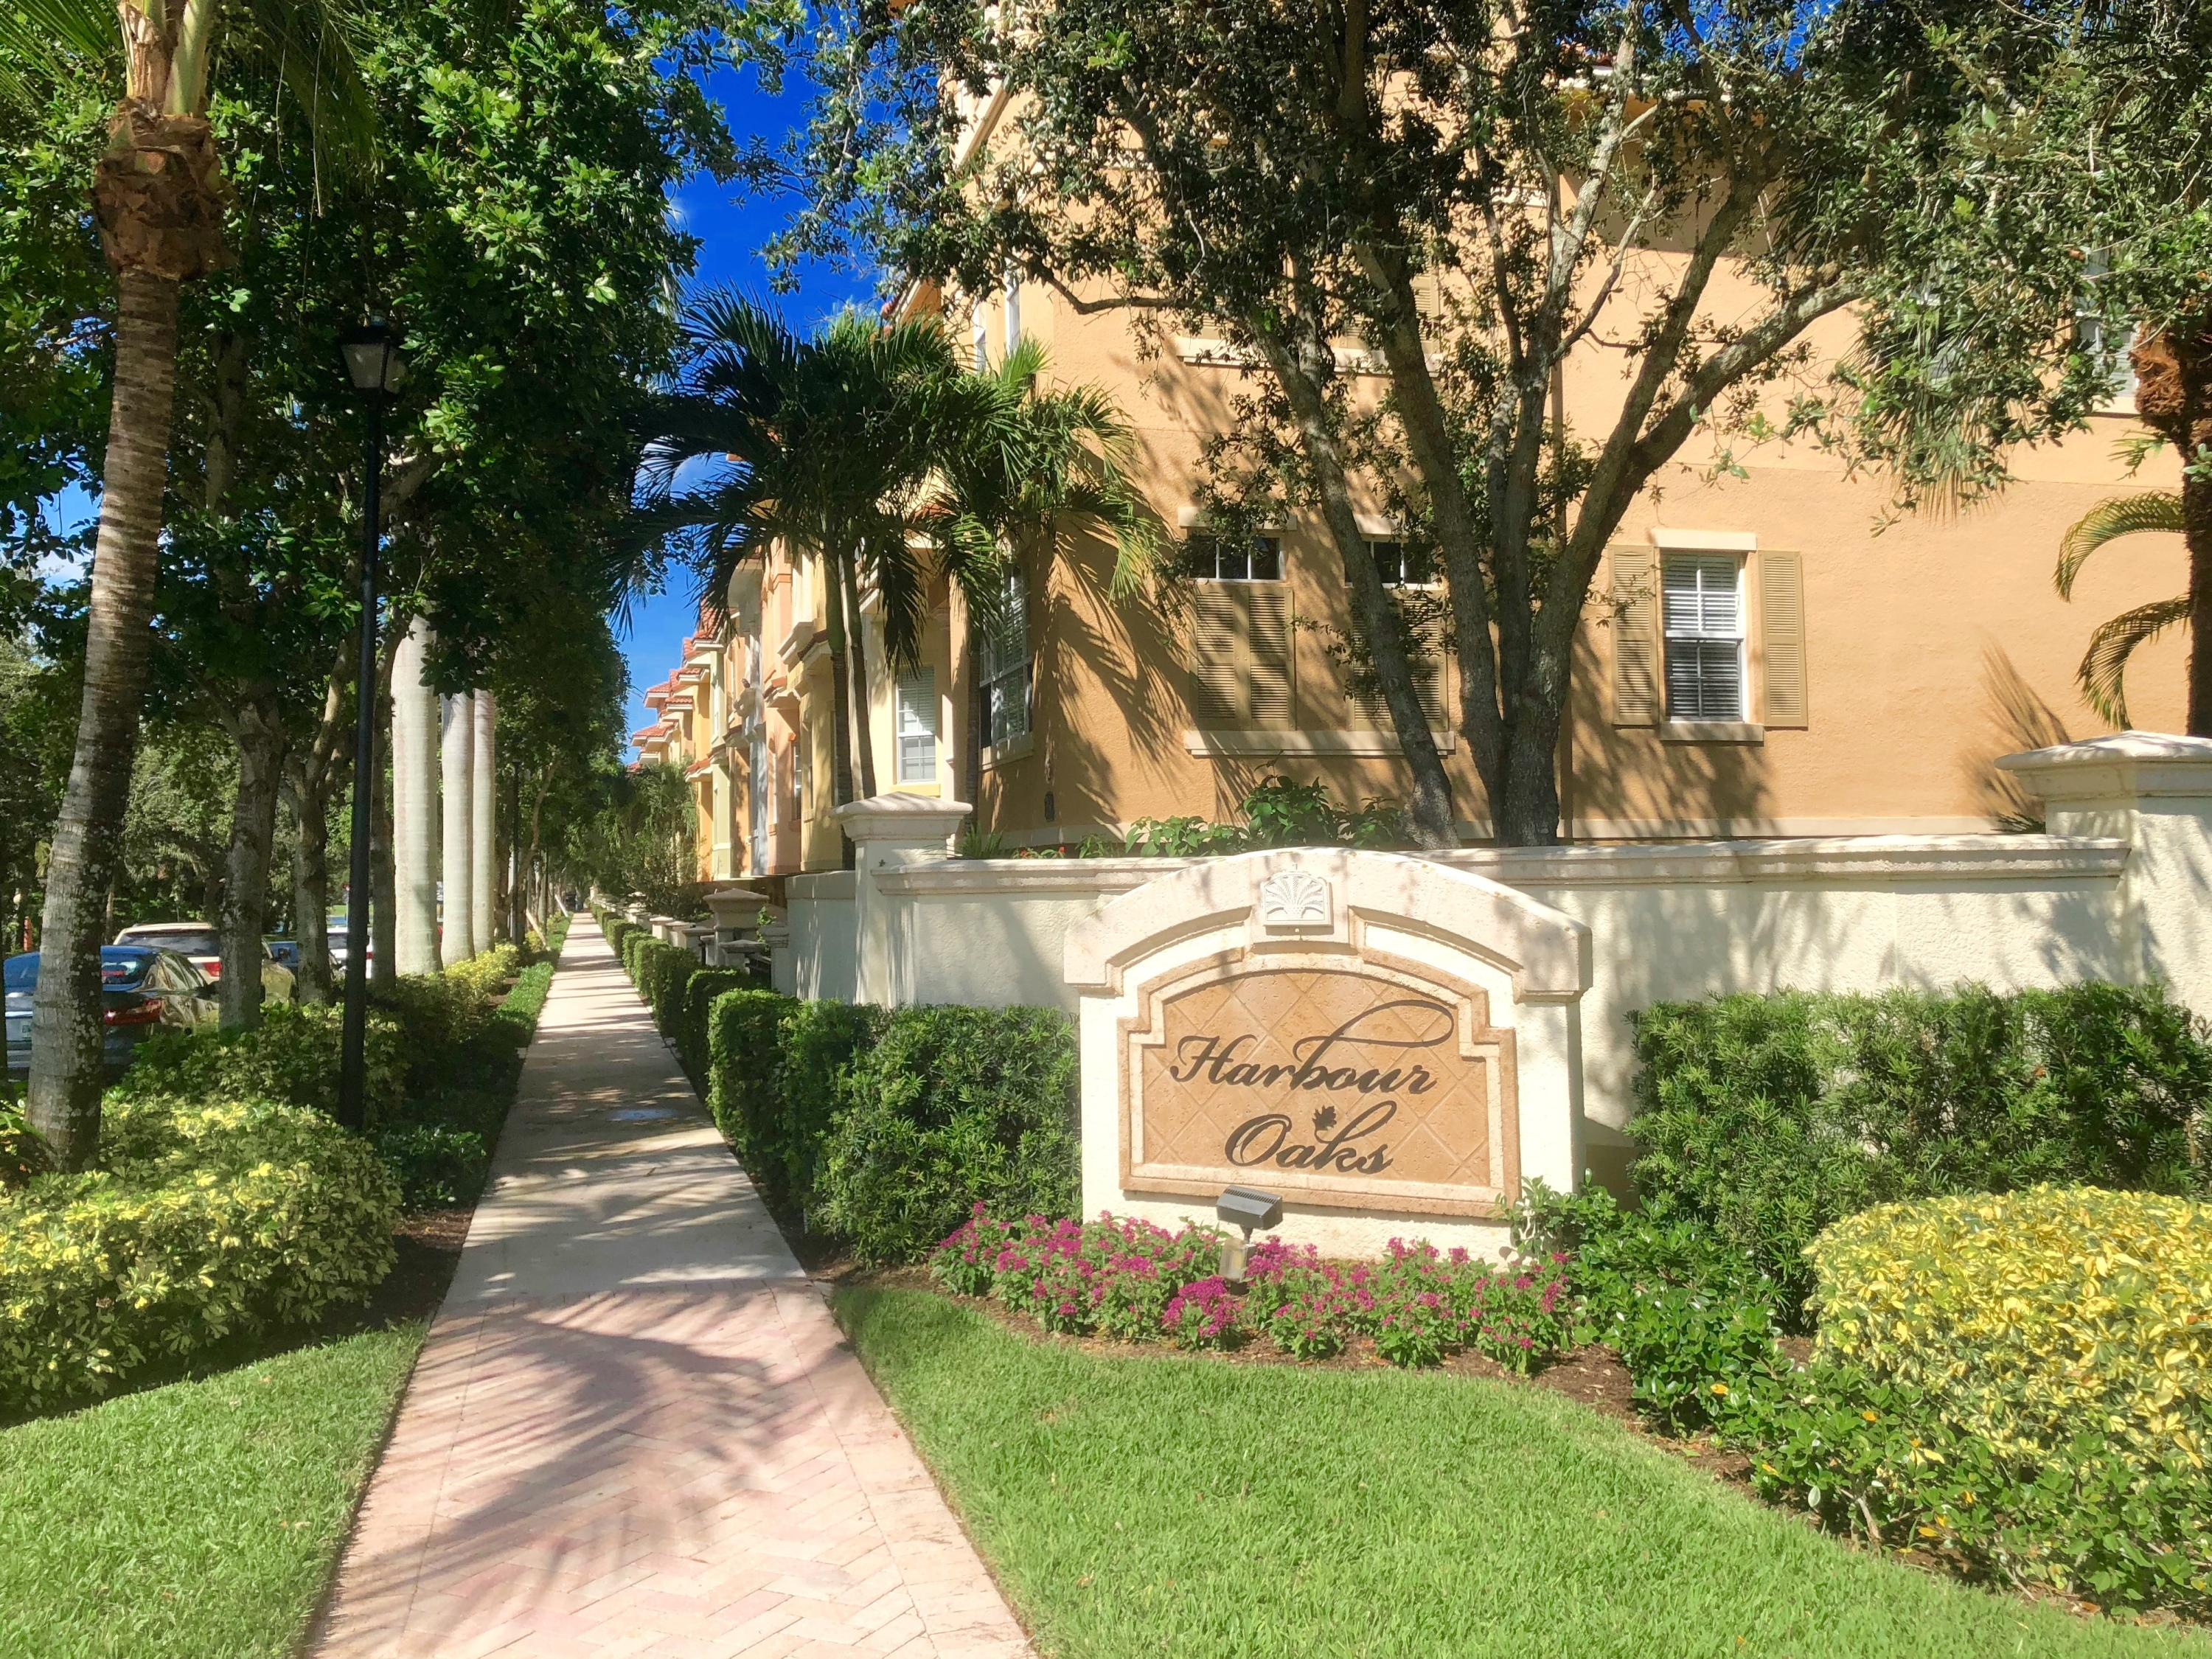 HARBOUR OAKS  - PALM BEACH GARDENS